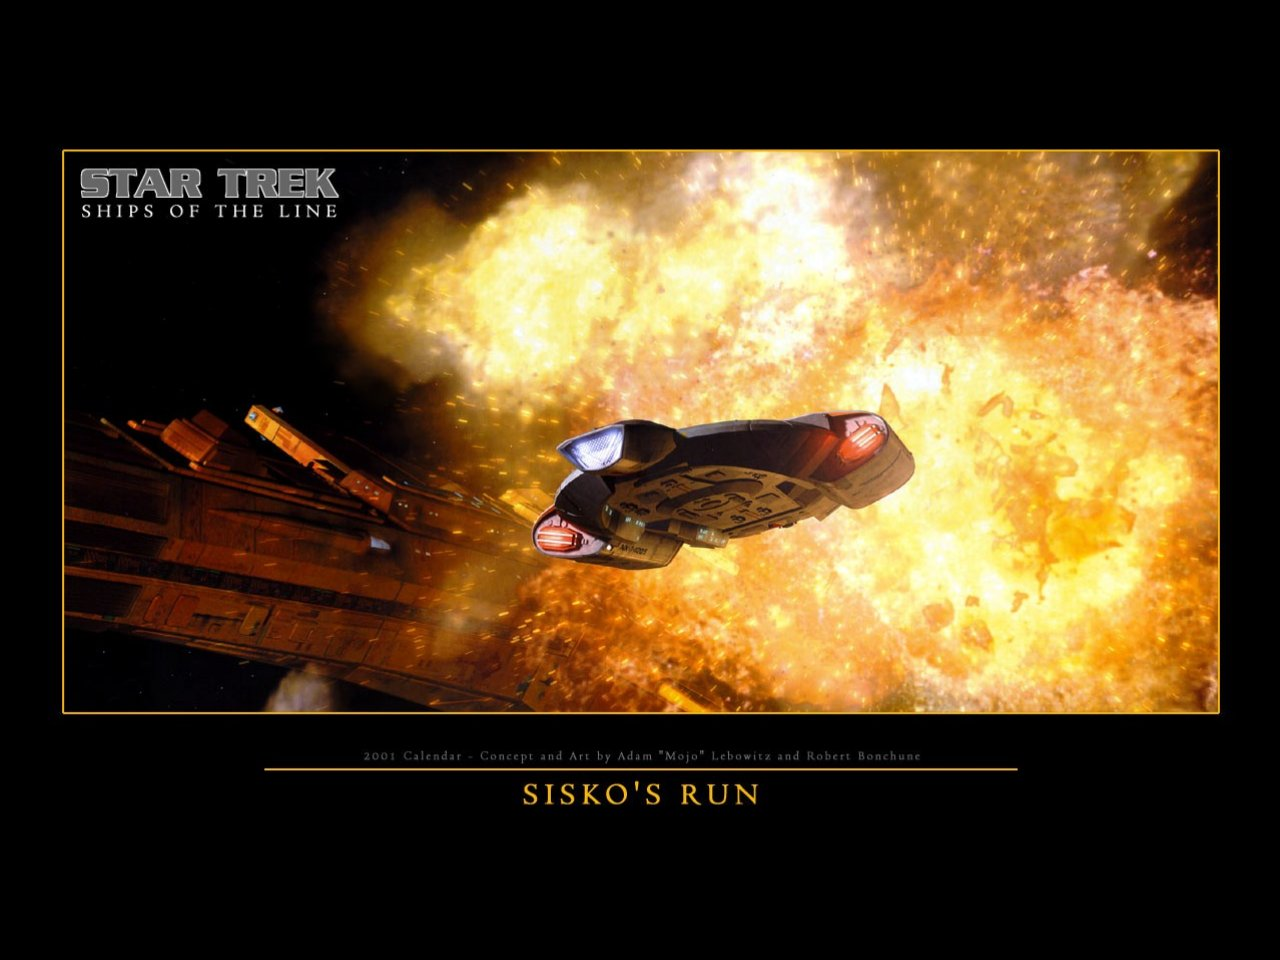 Download Deep Space Nine wallpaper DS9 Defiant Siskos Run 1280x960